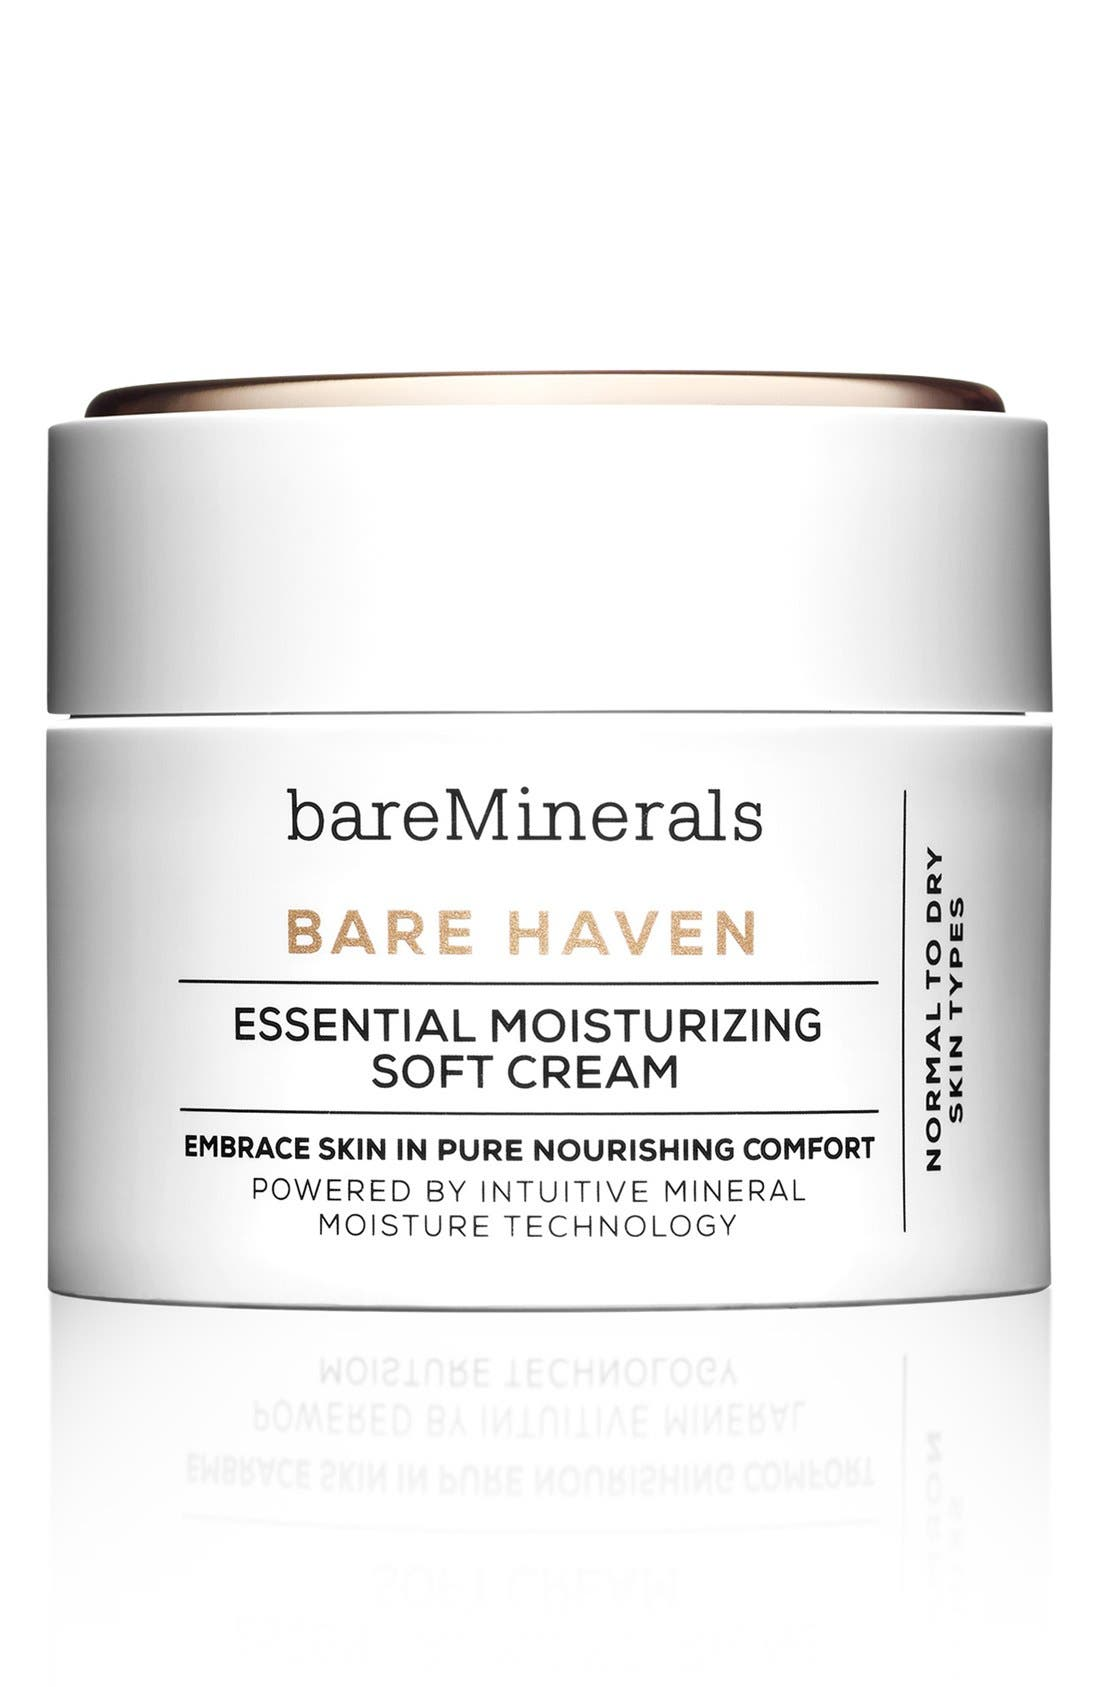 bareMinerals® Bare Haven Essential Moisturizing Soft Cream